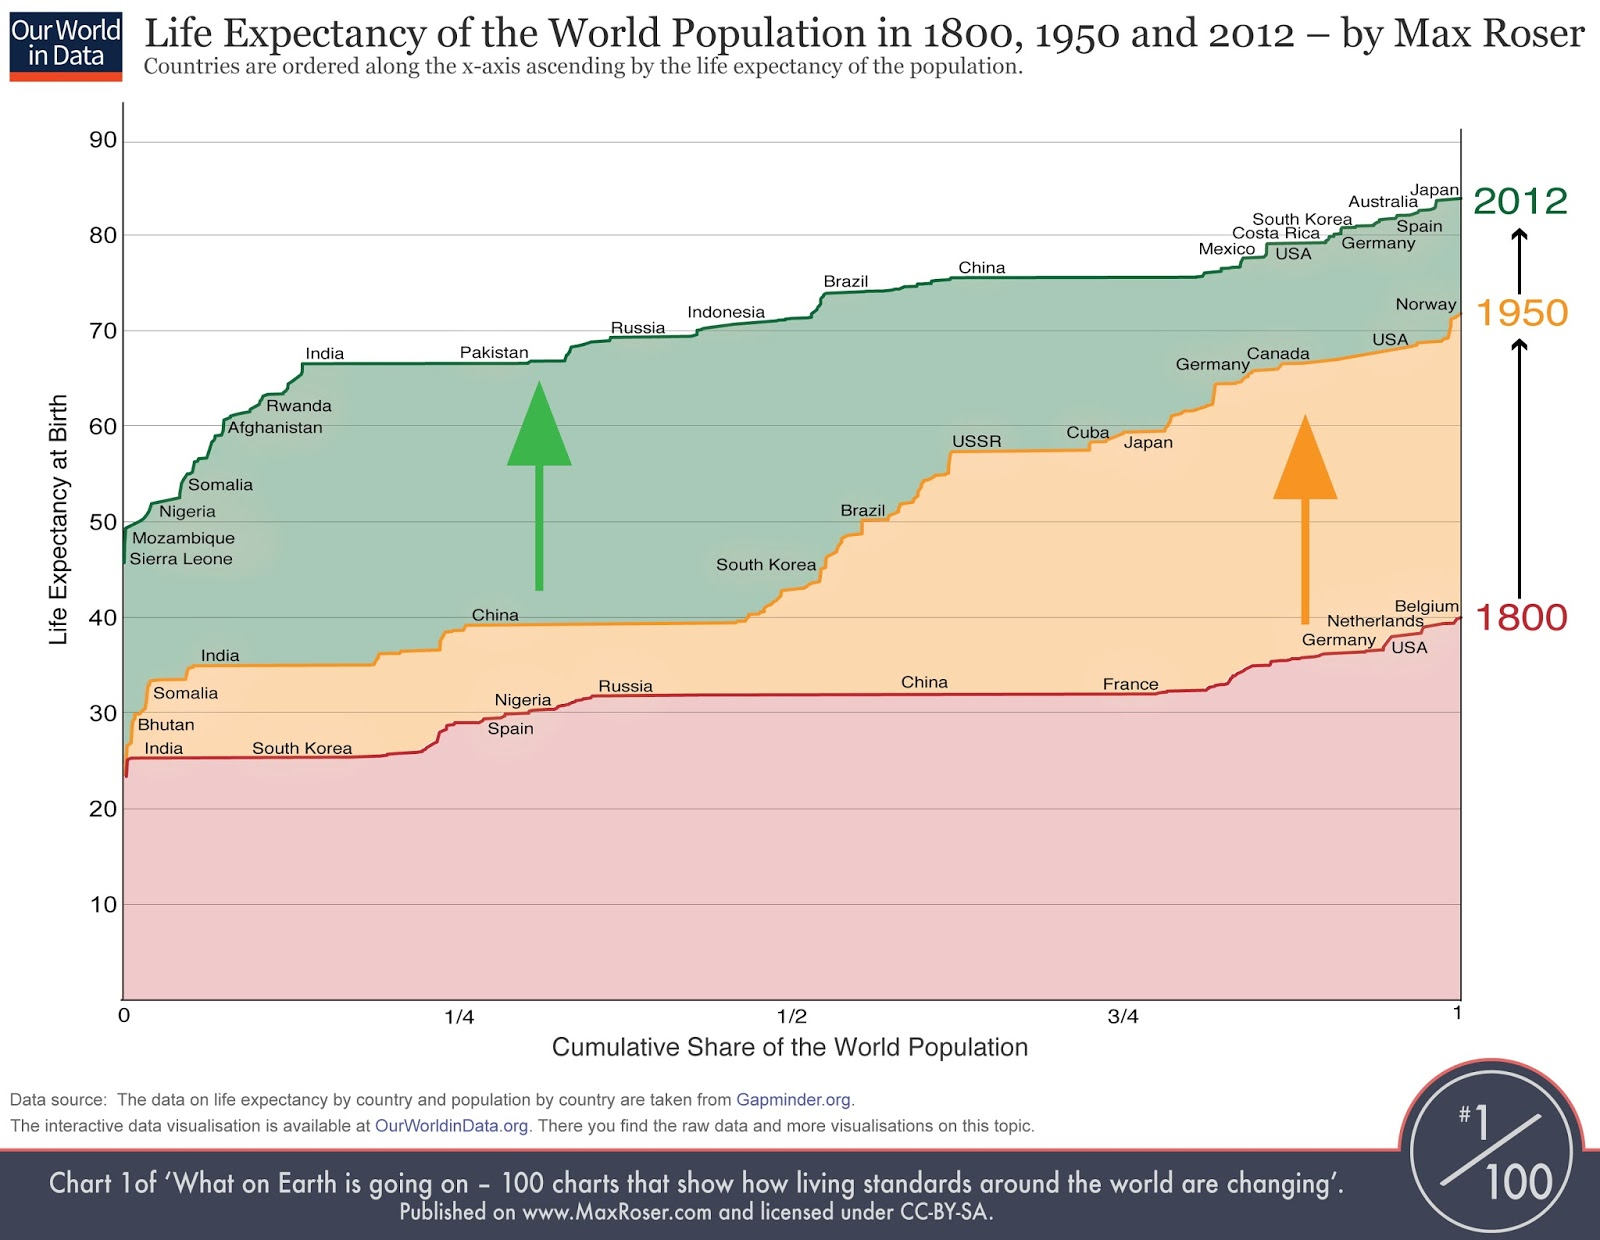 Life expectancy of the world population in 1800, 1950 & 2012